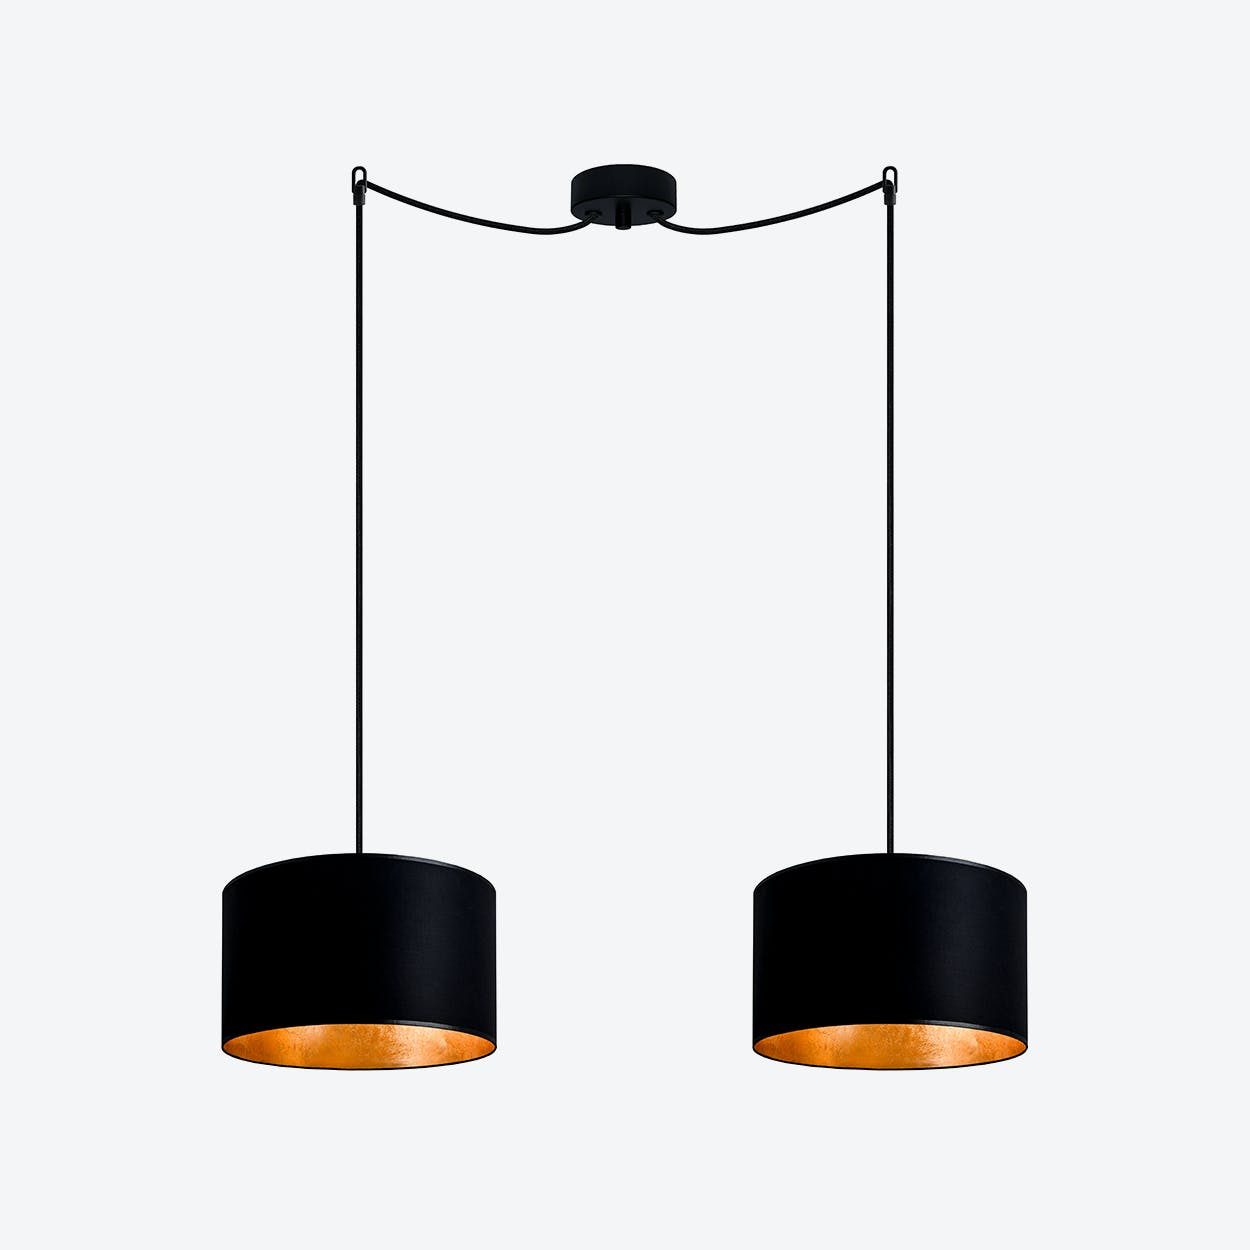 MIKA Small Double Pendant Light in Black with Gold Leaf